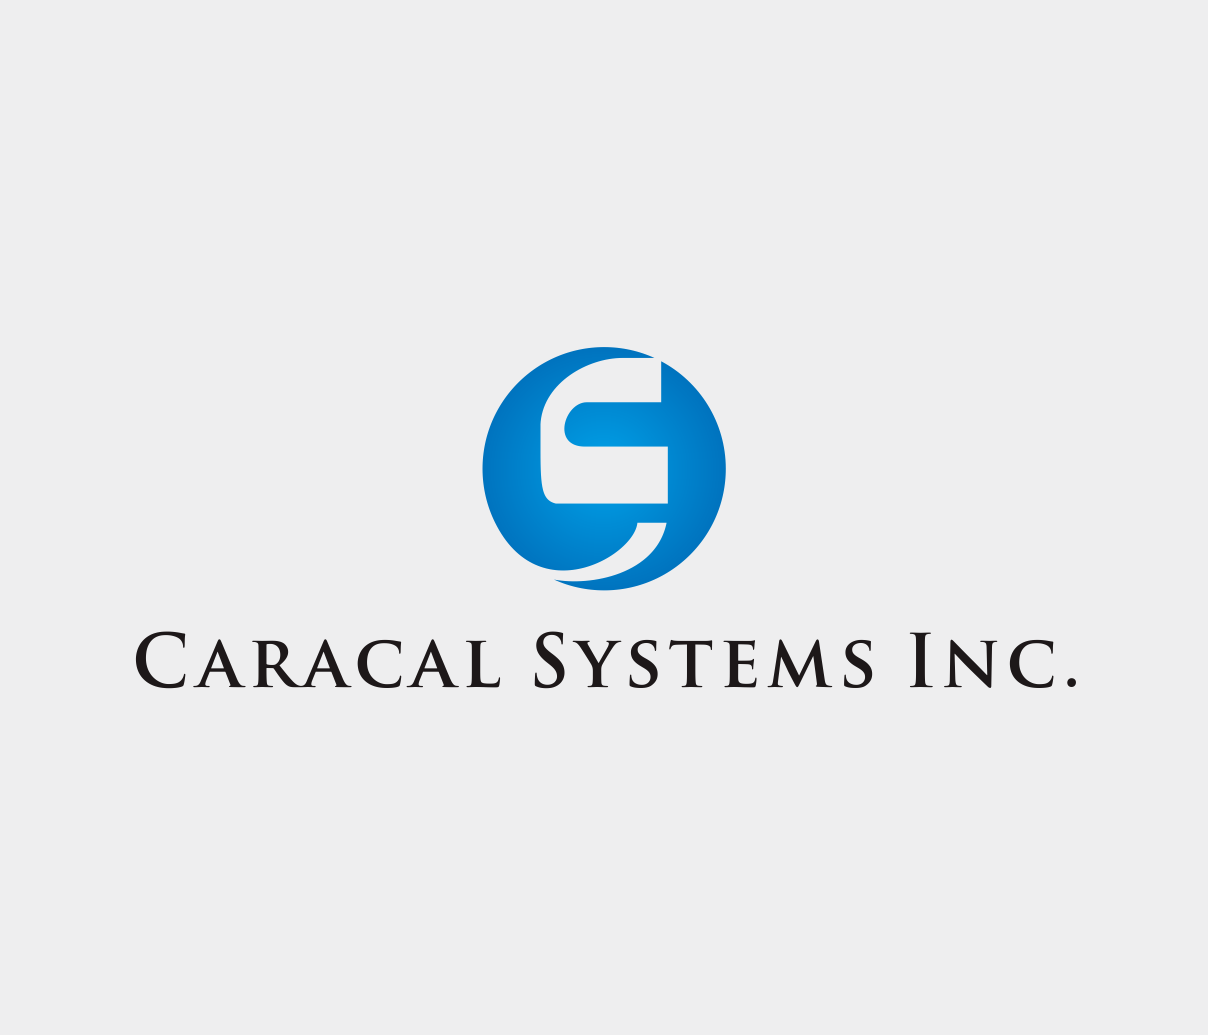 Logo Design by Armada Jamaluddin - Entry No. 126 in the Logo Design Contest Inspiring Logo Design for Caracal Systems Inc..